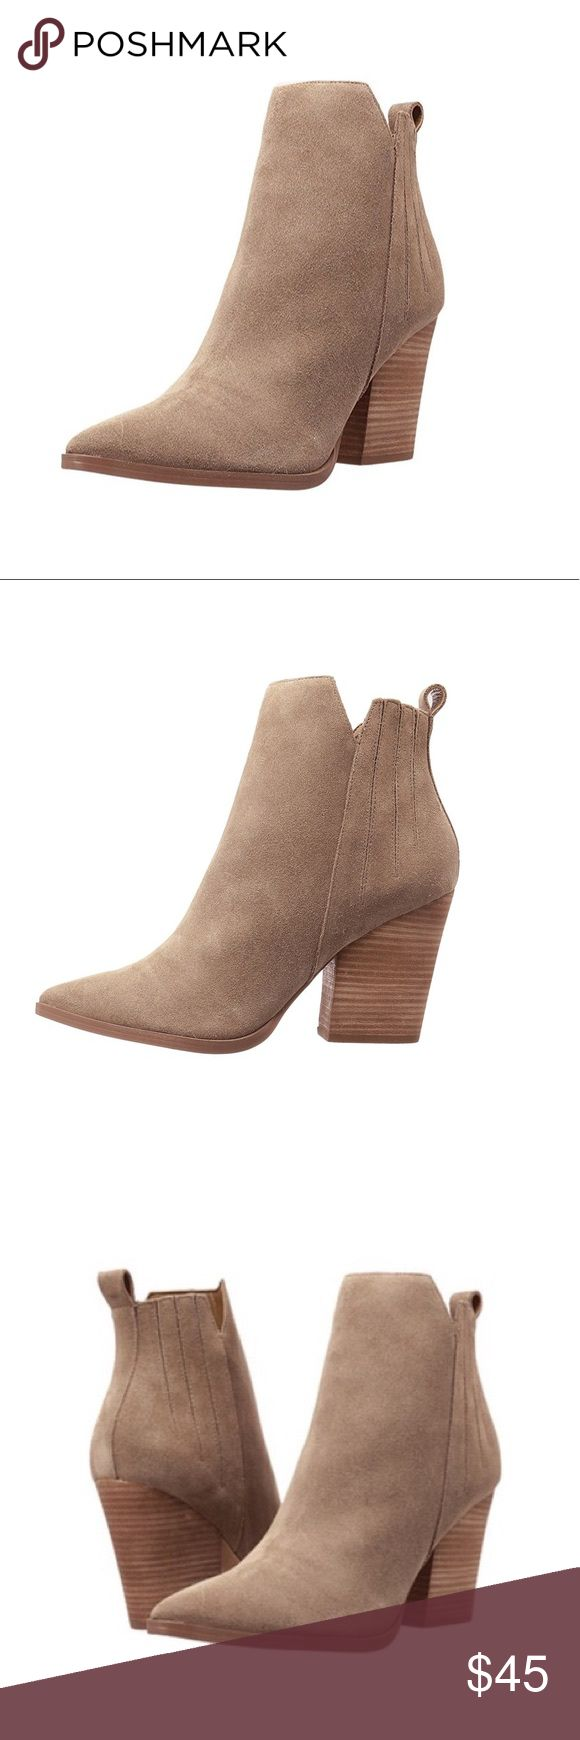 Guess Booties Tan Guess Booties. Used. Good condition Guess Shoes Ankle Boots & Booties